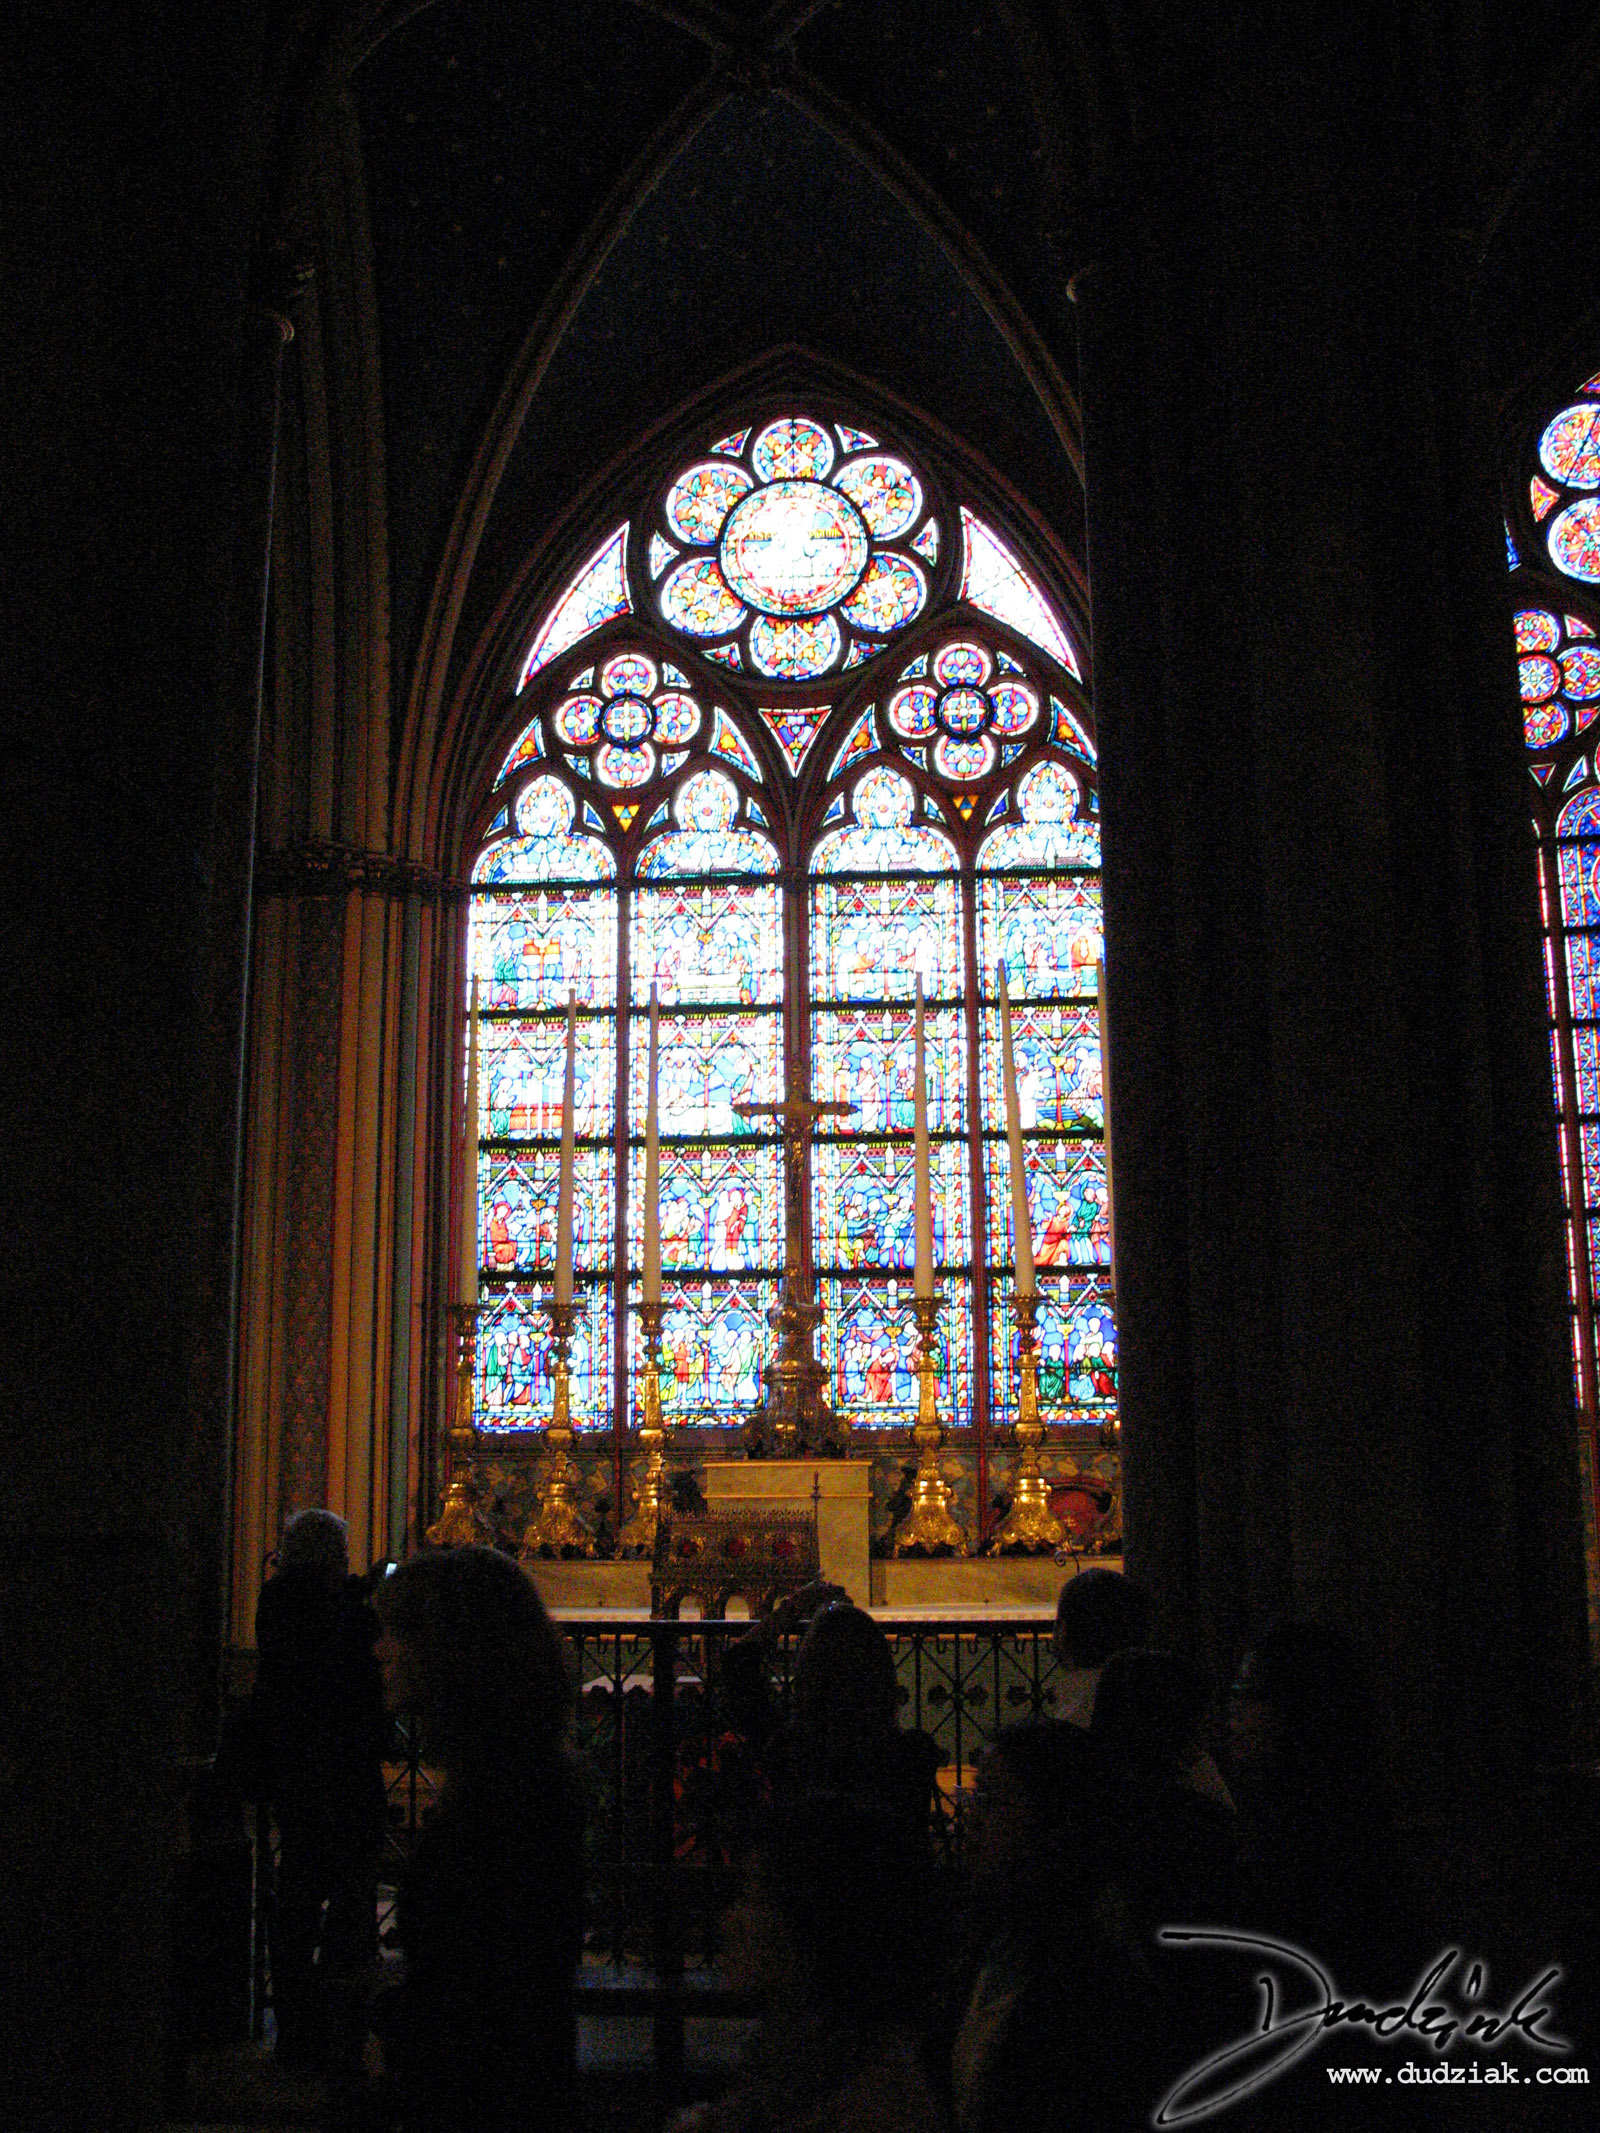 Notre Dame,  Notre Dame Cathedral,  France,  Paris,  Stained-Glass Window